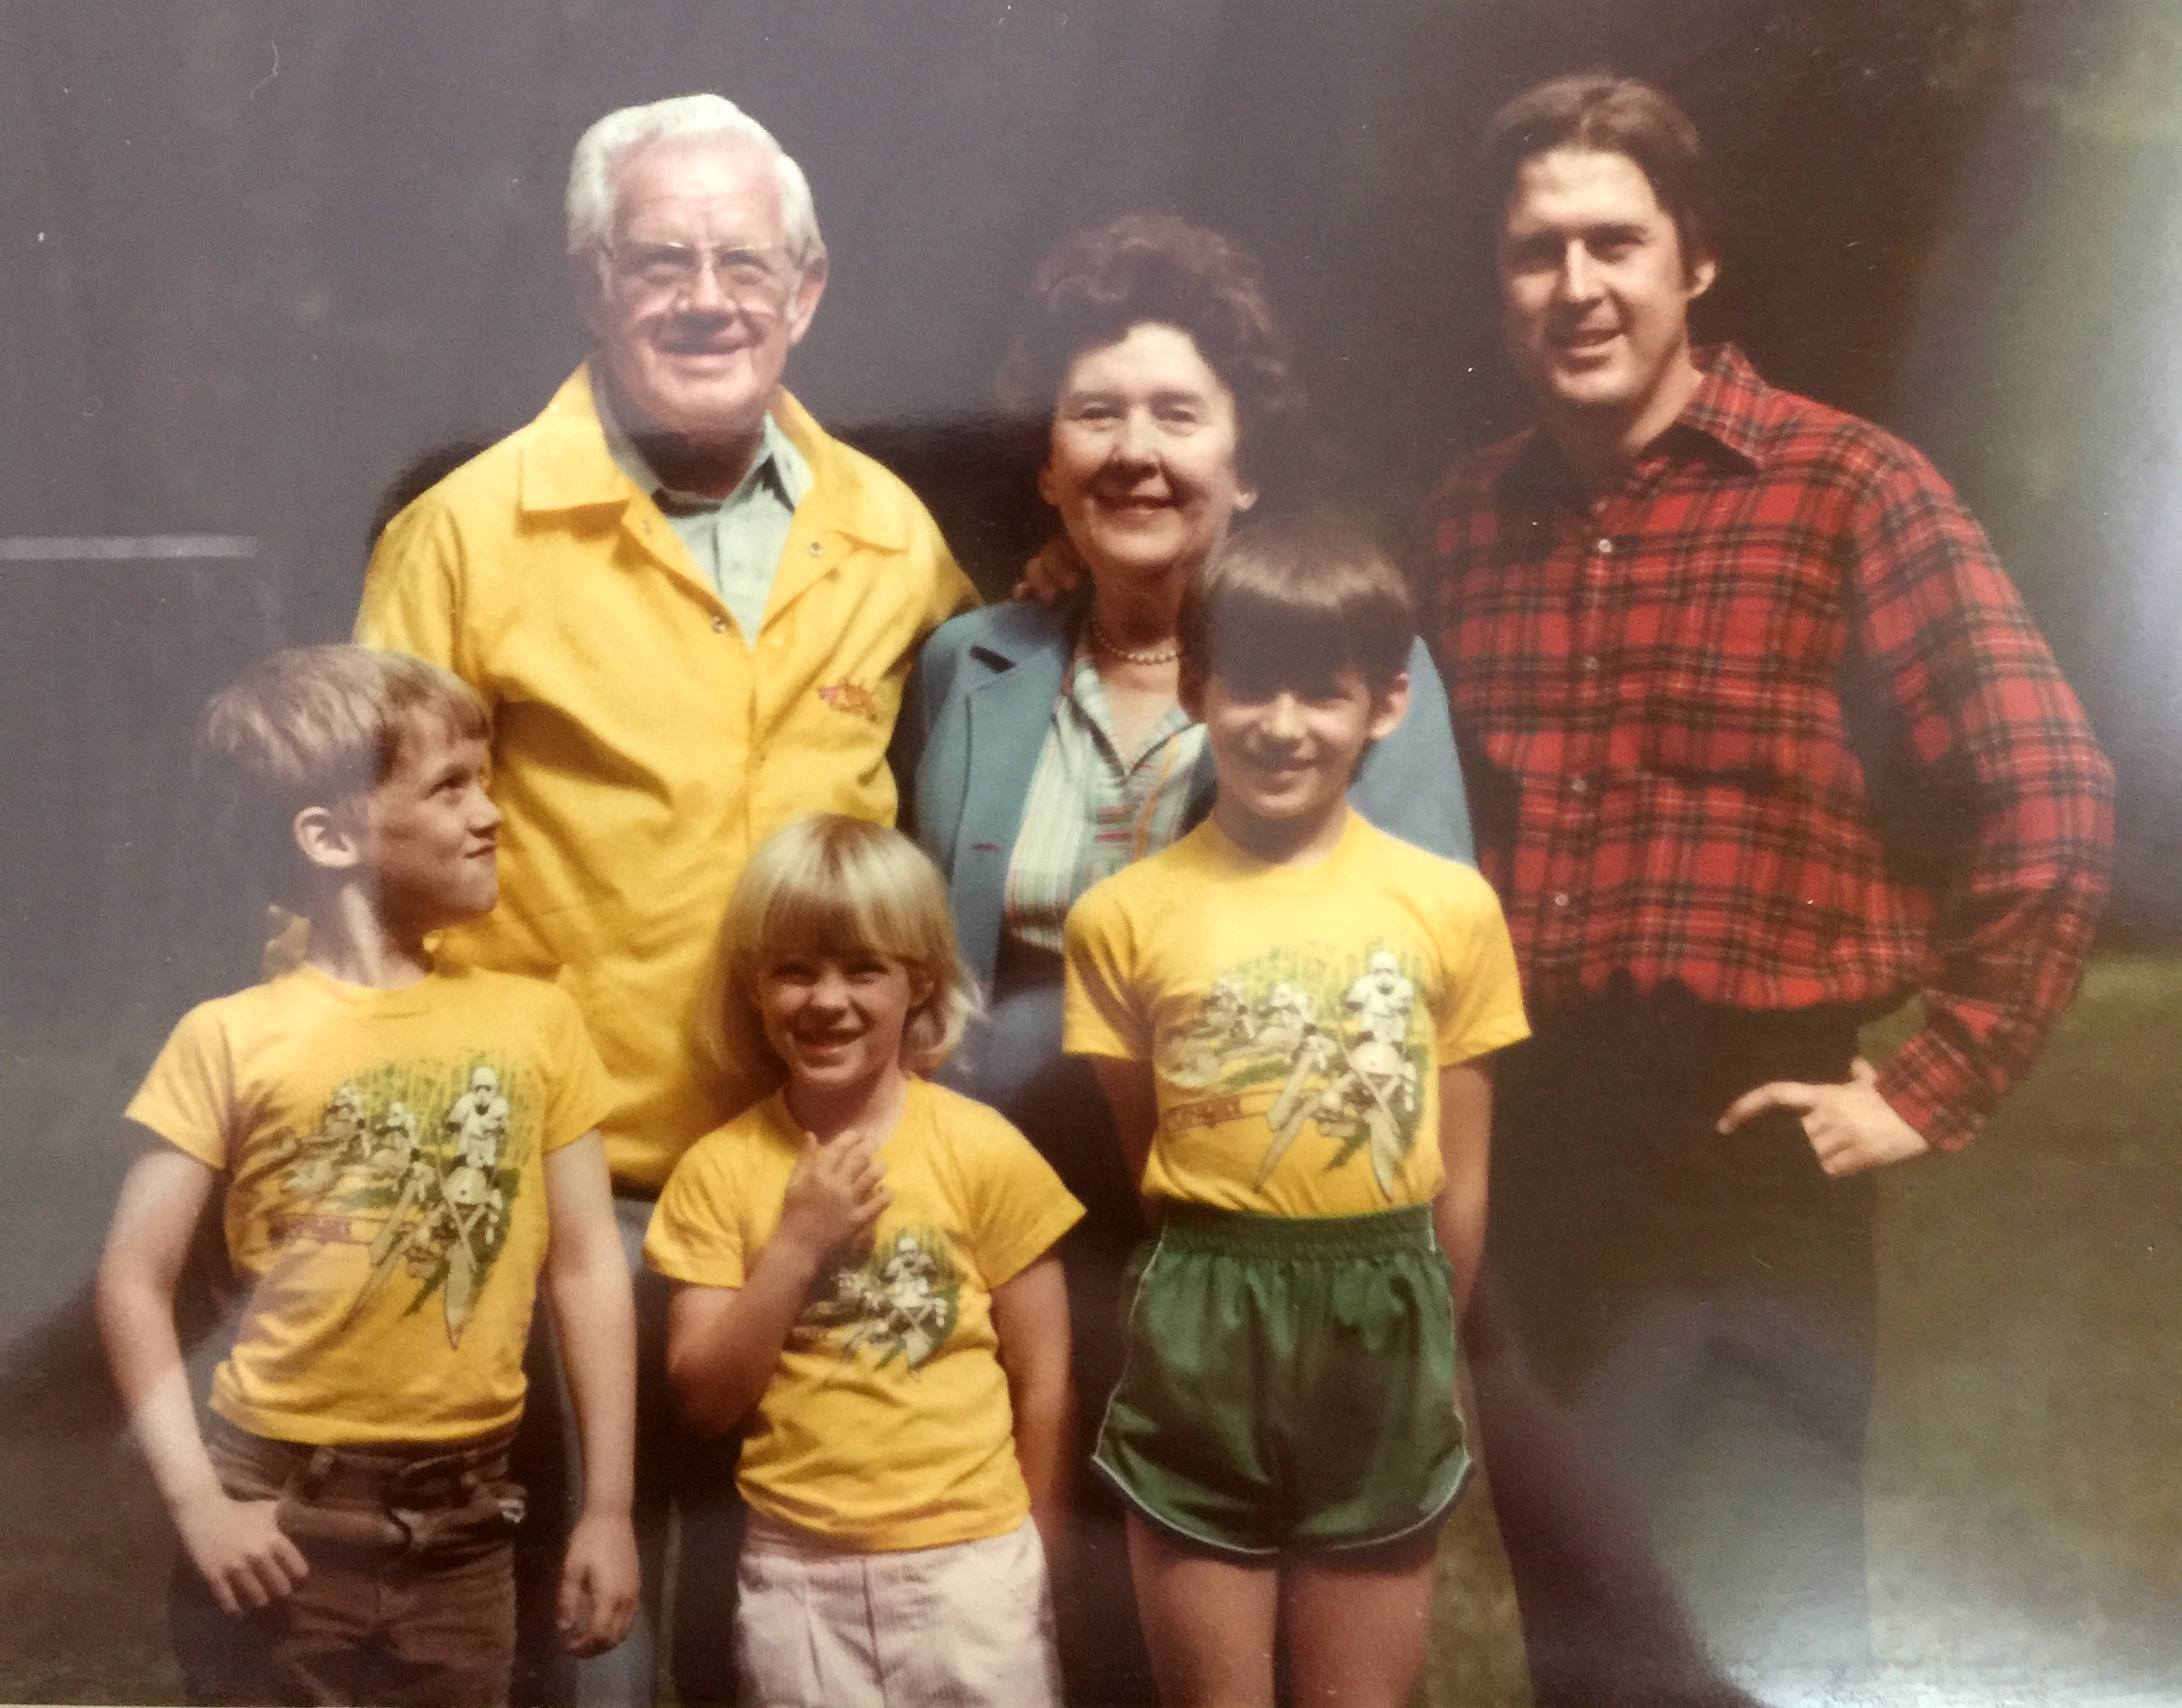 Dave Brott (left) and family in 1983, donning coordinated Biker Scout t-shirts.